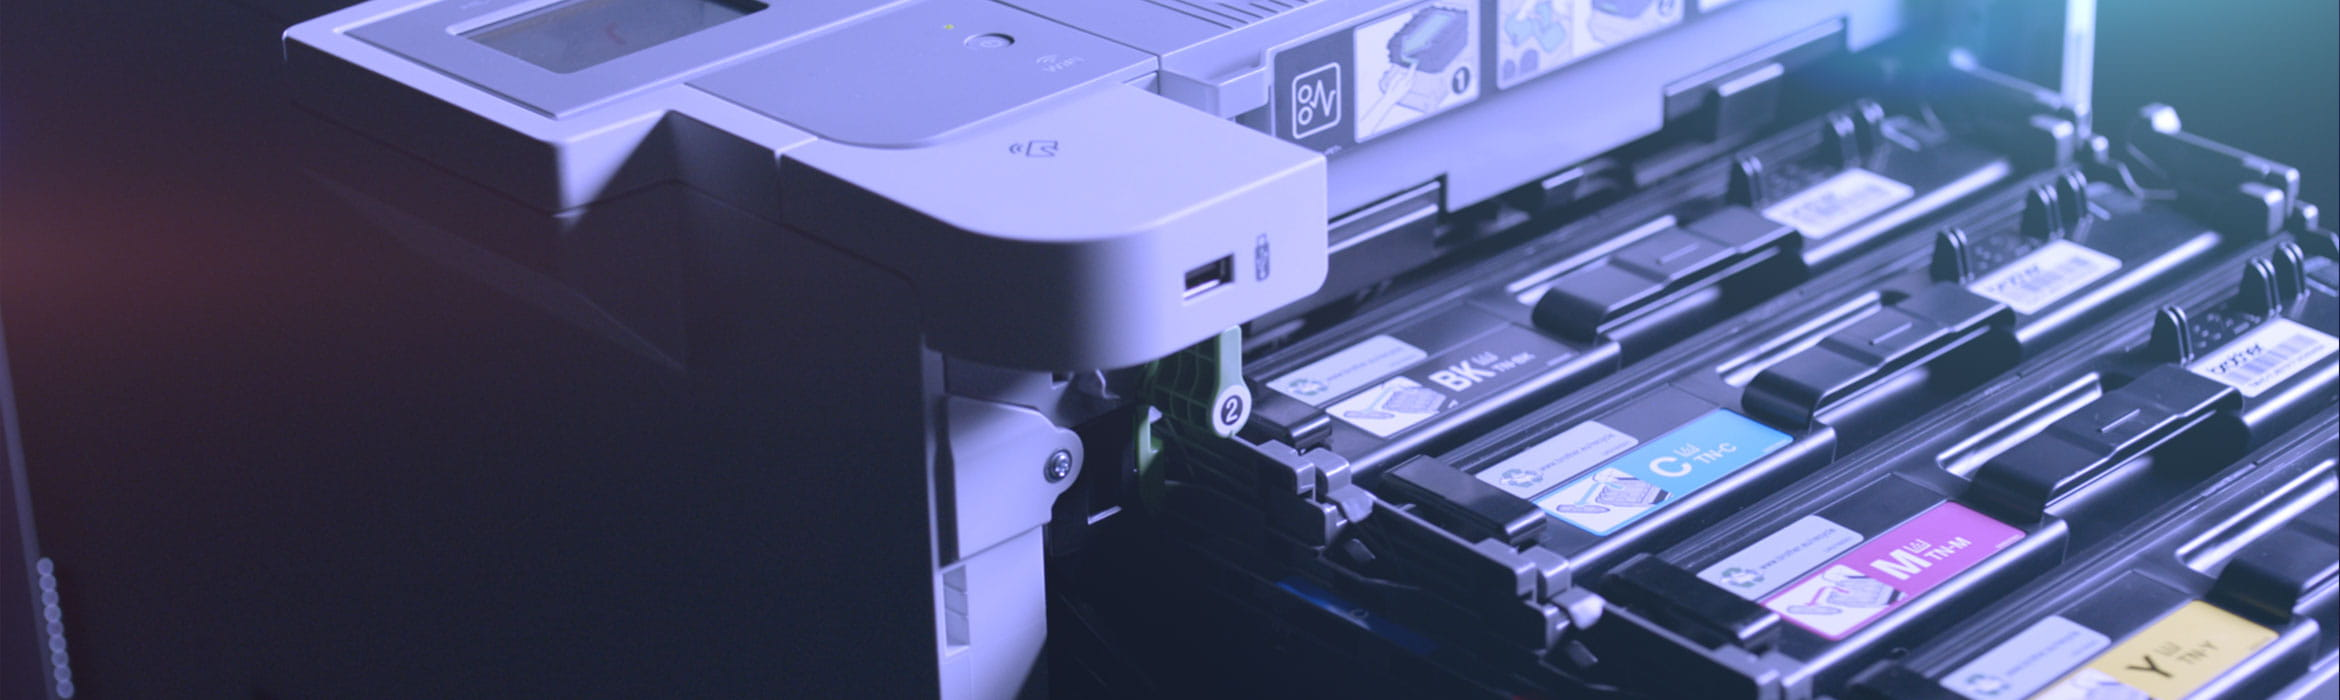 Brother HL-L9310CDW business printer with toner cartridges pulled out from printer